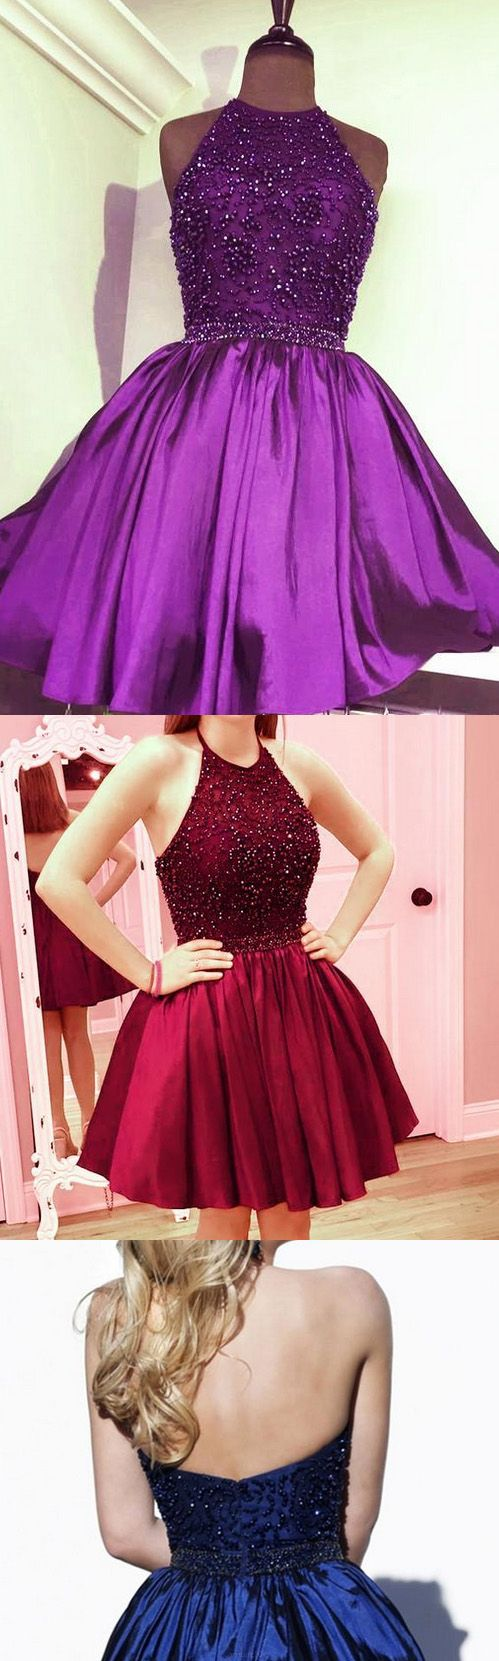 Cheap Prom Dresses, Short Prom Dresses, Prom Dresses Cheap, Blue Prom Dresses, Royal Blue Prom Dresses, A Line Prom Dresses, Beaded Prom Dresses, Homecoming Dresses Short, Blue Short Prom Dresses, Prom Dresses Short, Royal Blue dresses, Cheap Homecoming Dresses, A Line dresses, Backless Prom Dresses, Beaded/Beading Party Dresses, A-line/Princess Party Dresses, Sleeveless Party Dresses